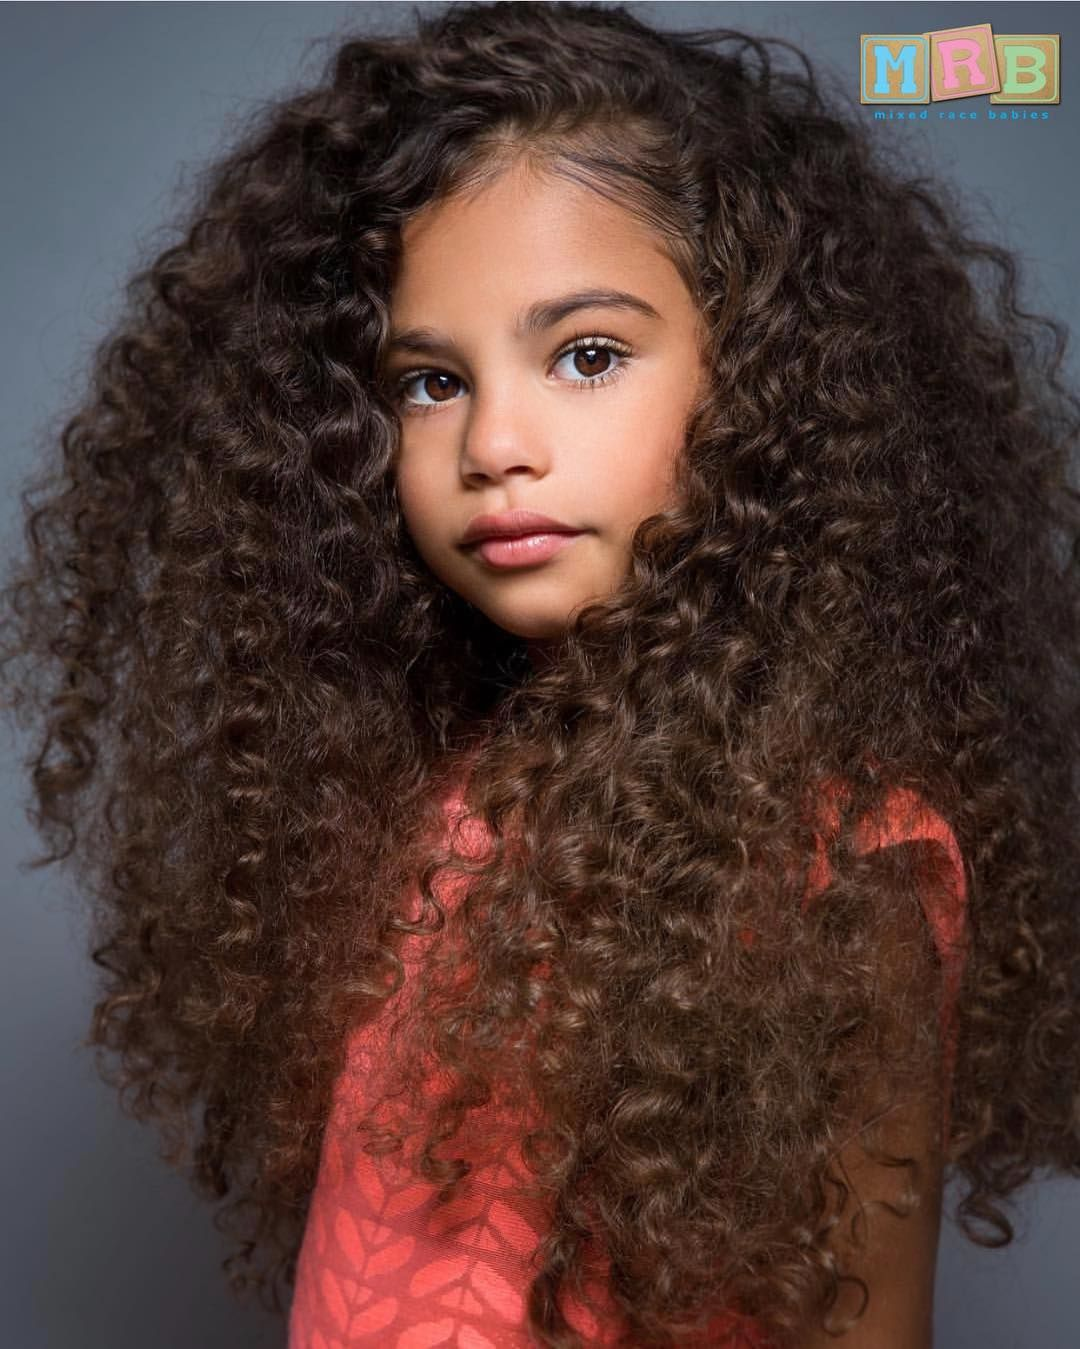 Puerto Rican Mexican Gabriella 8 Years Old Submission B In 2020 Curly Hair Styles Long Curly Hair Long Hair Styles